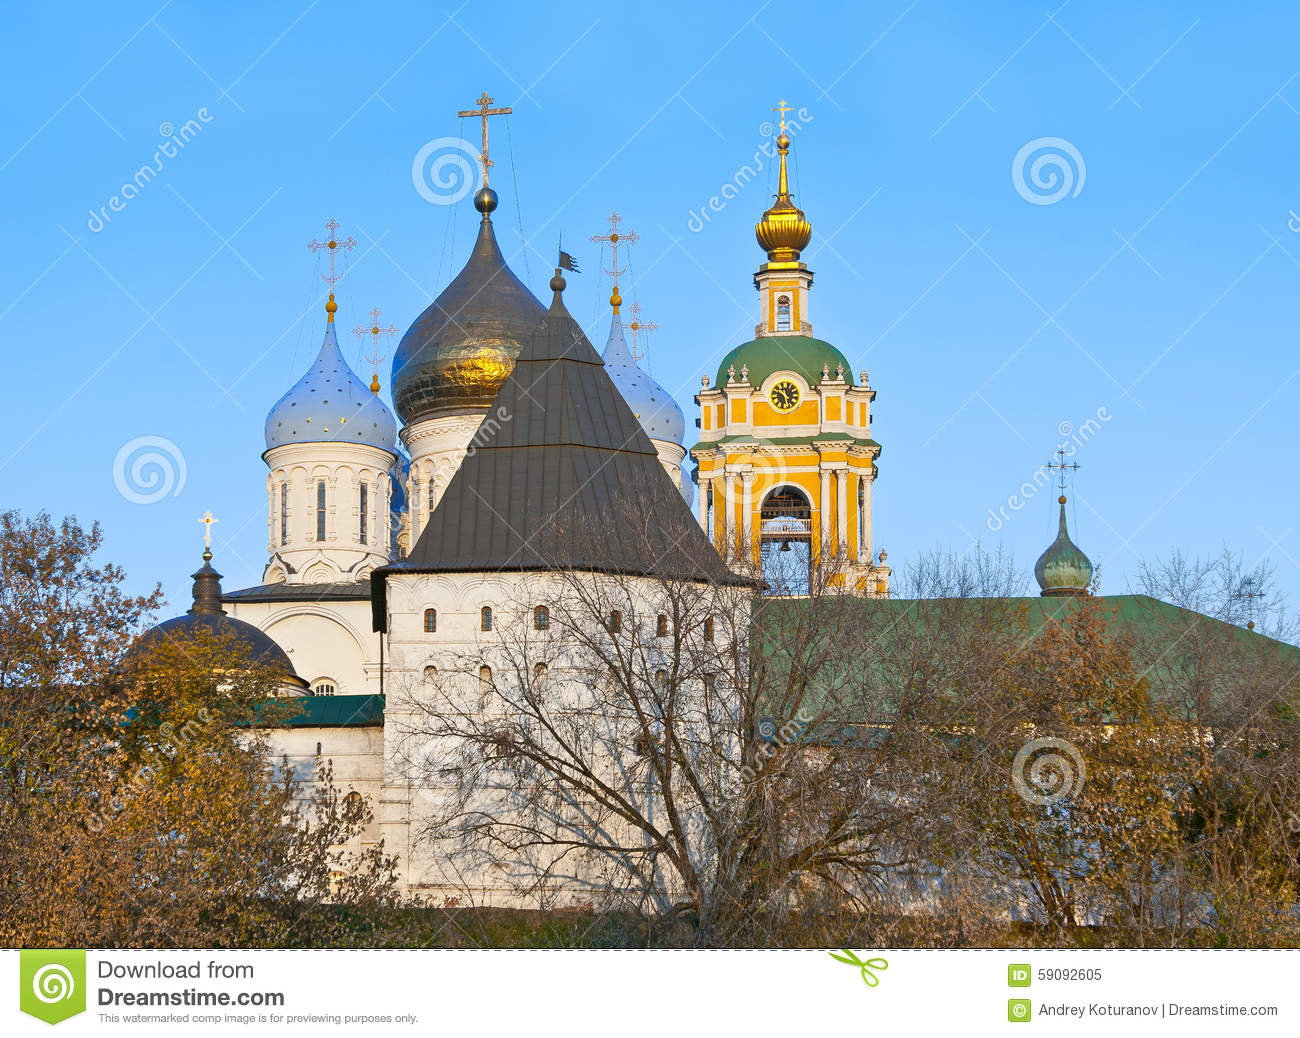 Old Russian Architecture Stock Photo.